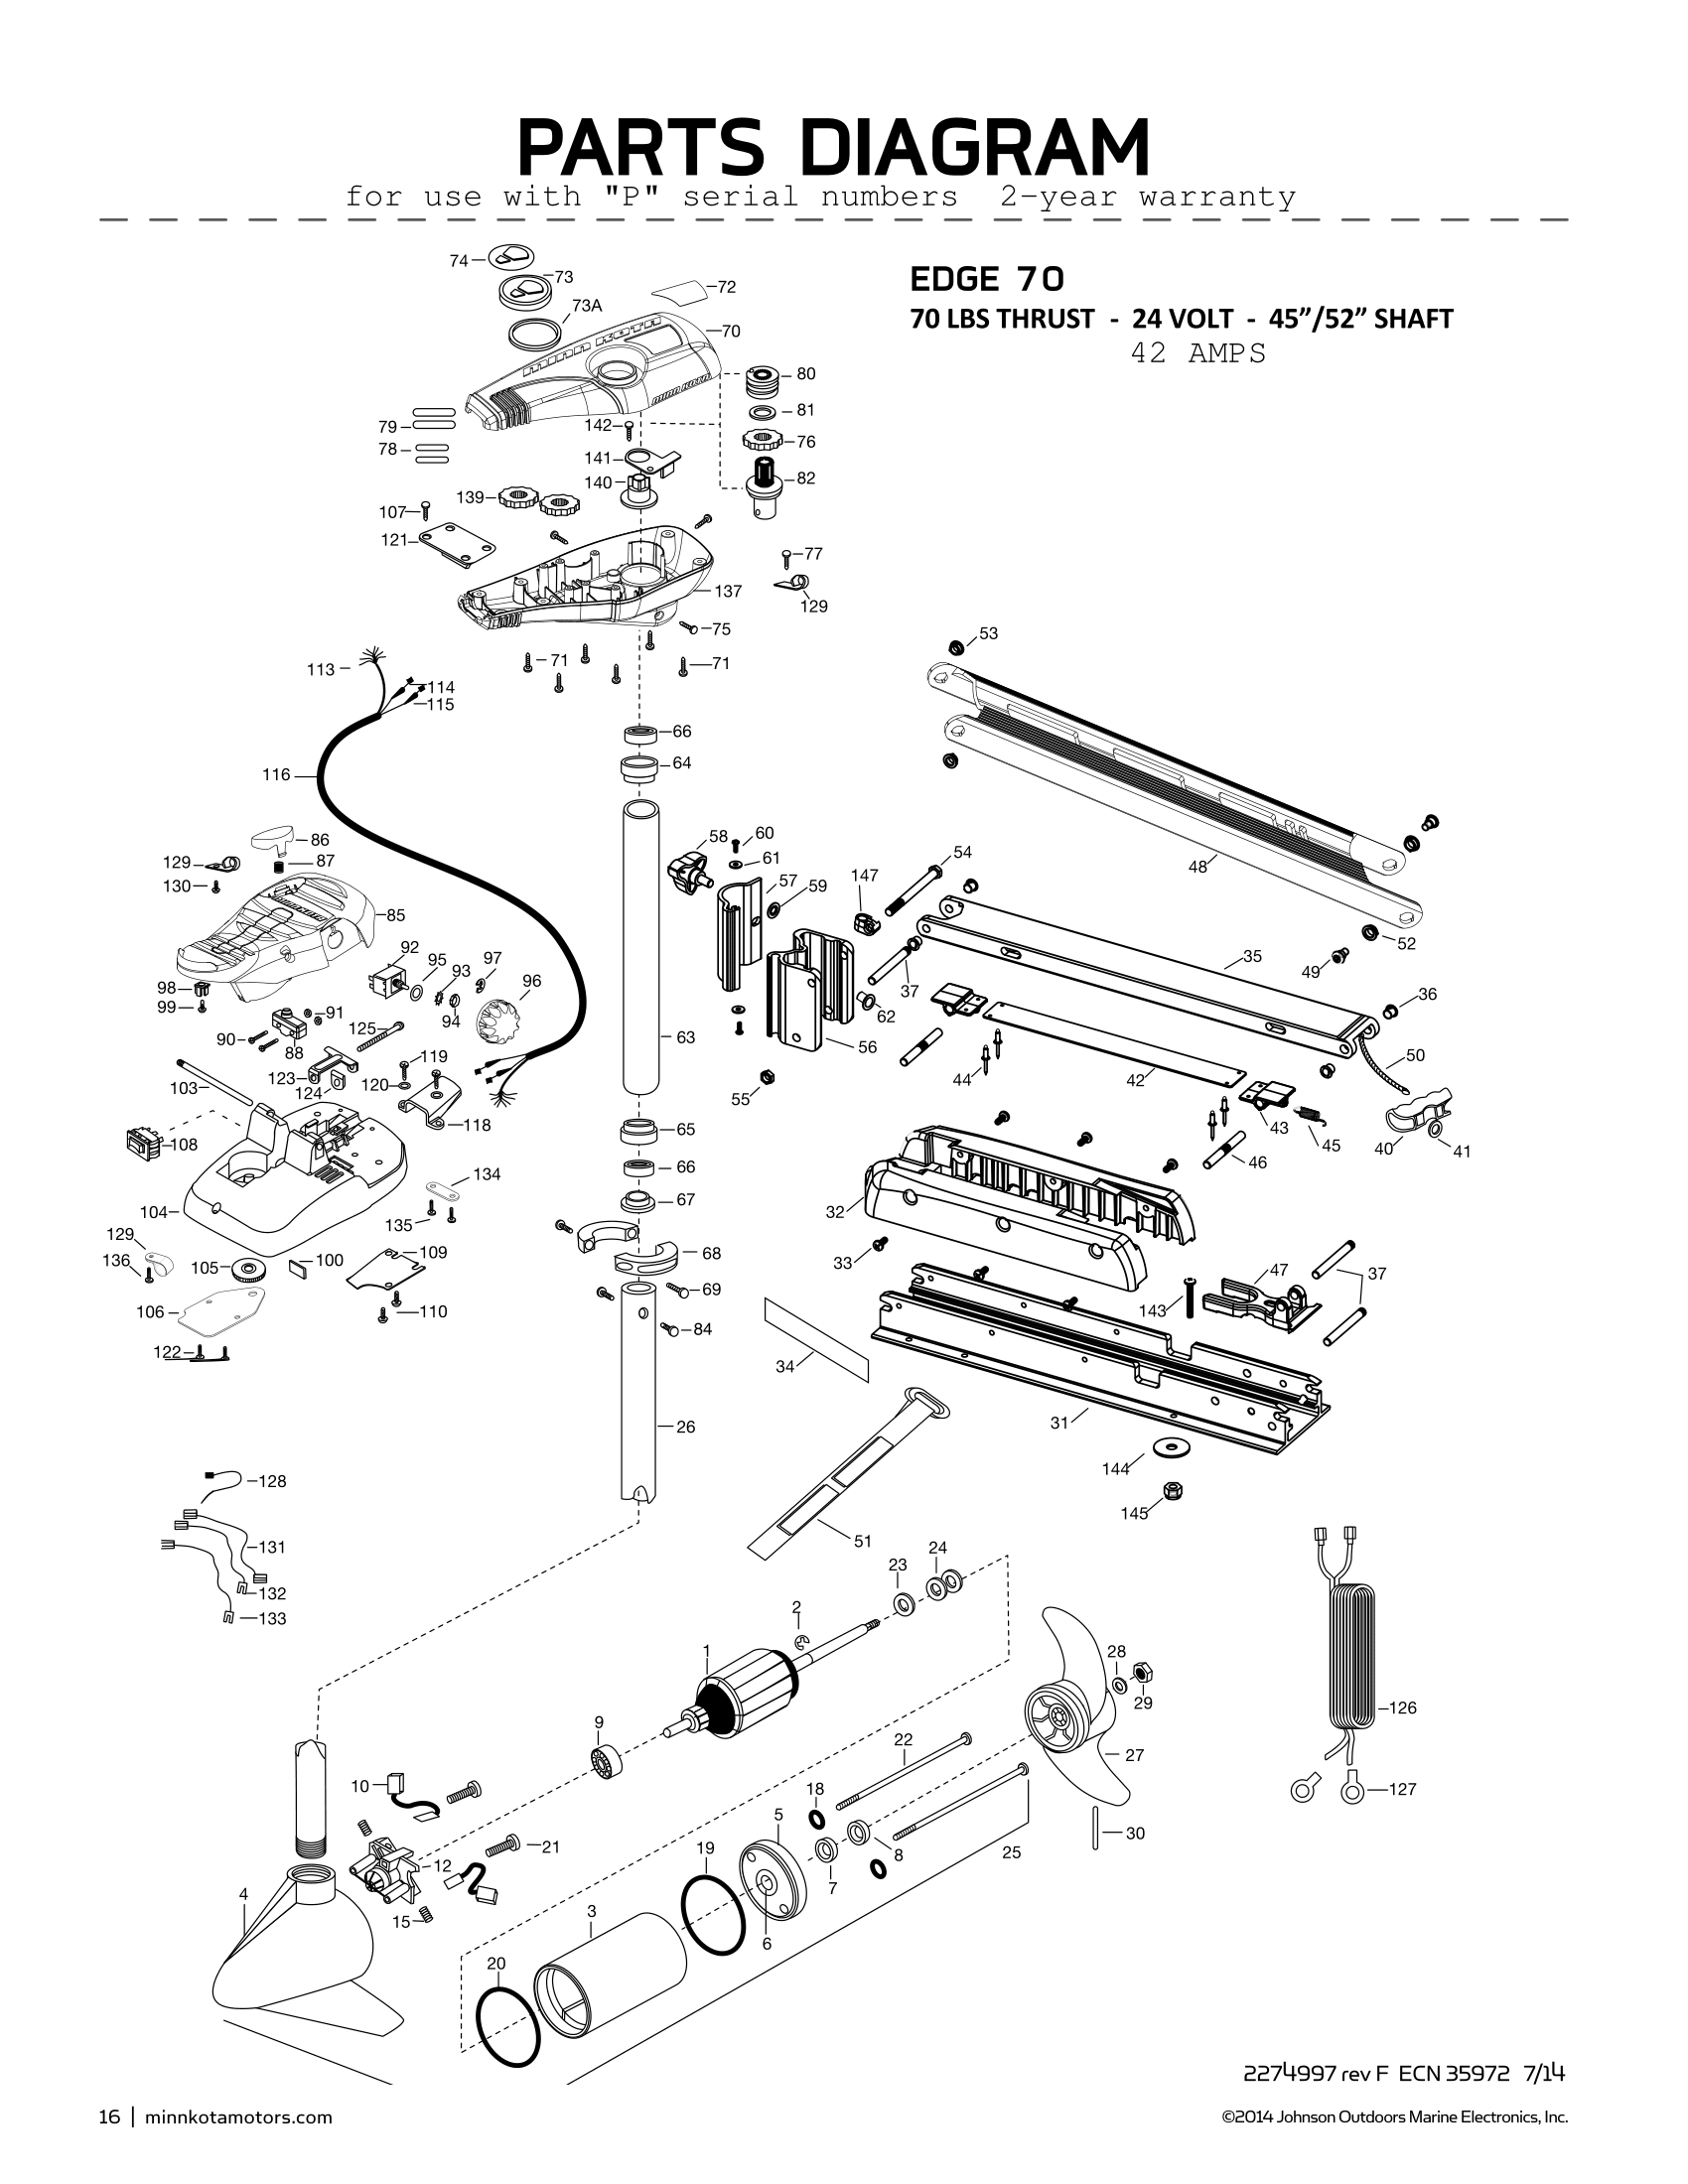 Wrg Minn Kota Edge 70 Wiring Diagram